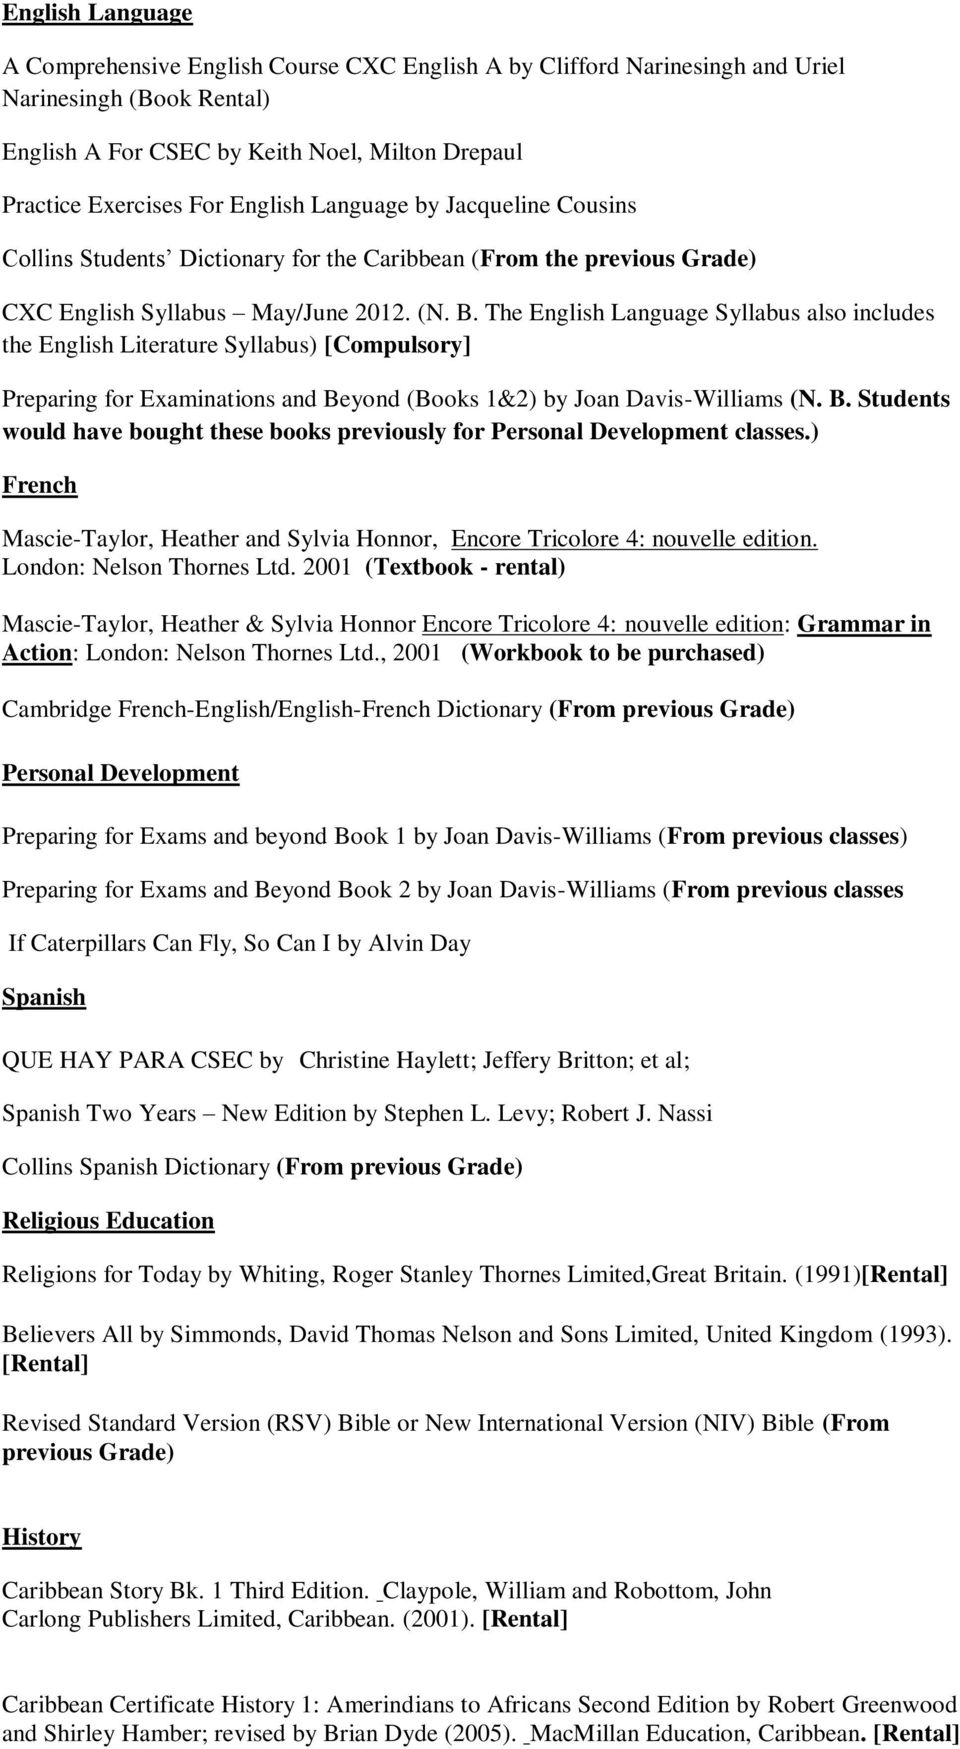 Ardenne high school grade 10 booklist pdf the english language syllabus also includes the english literature syllabus compulsory preparing for fandeluxe Image collections